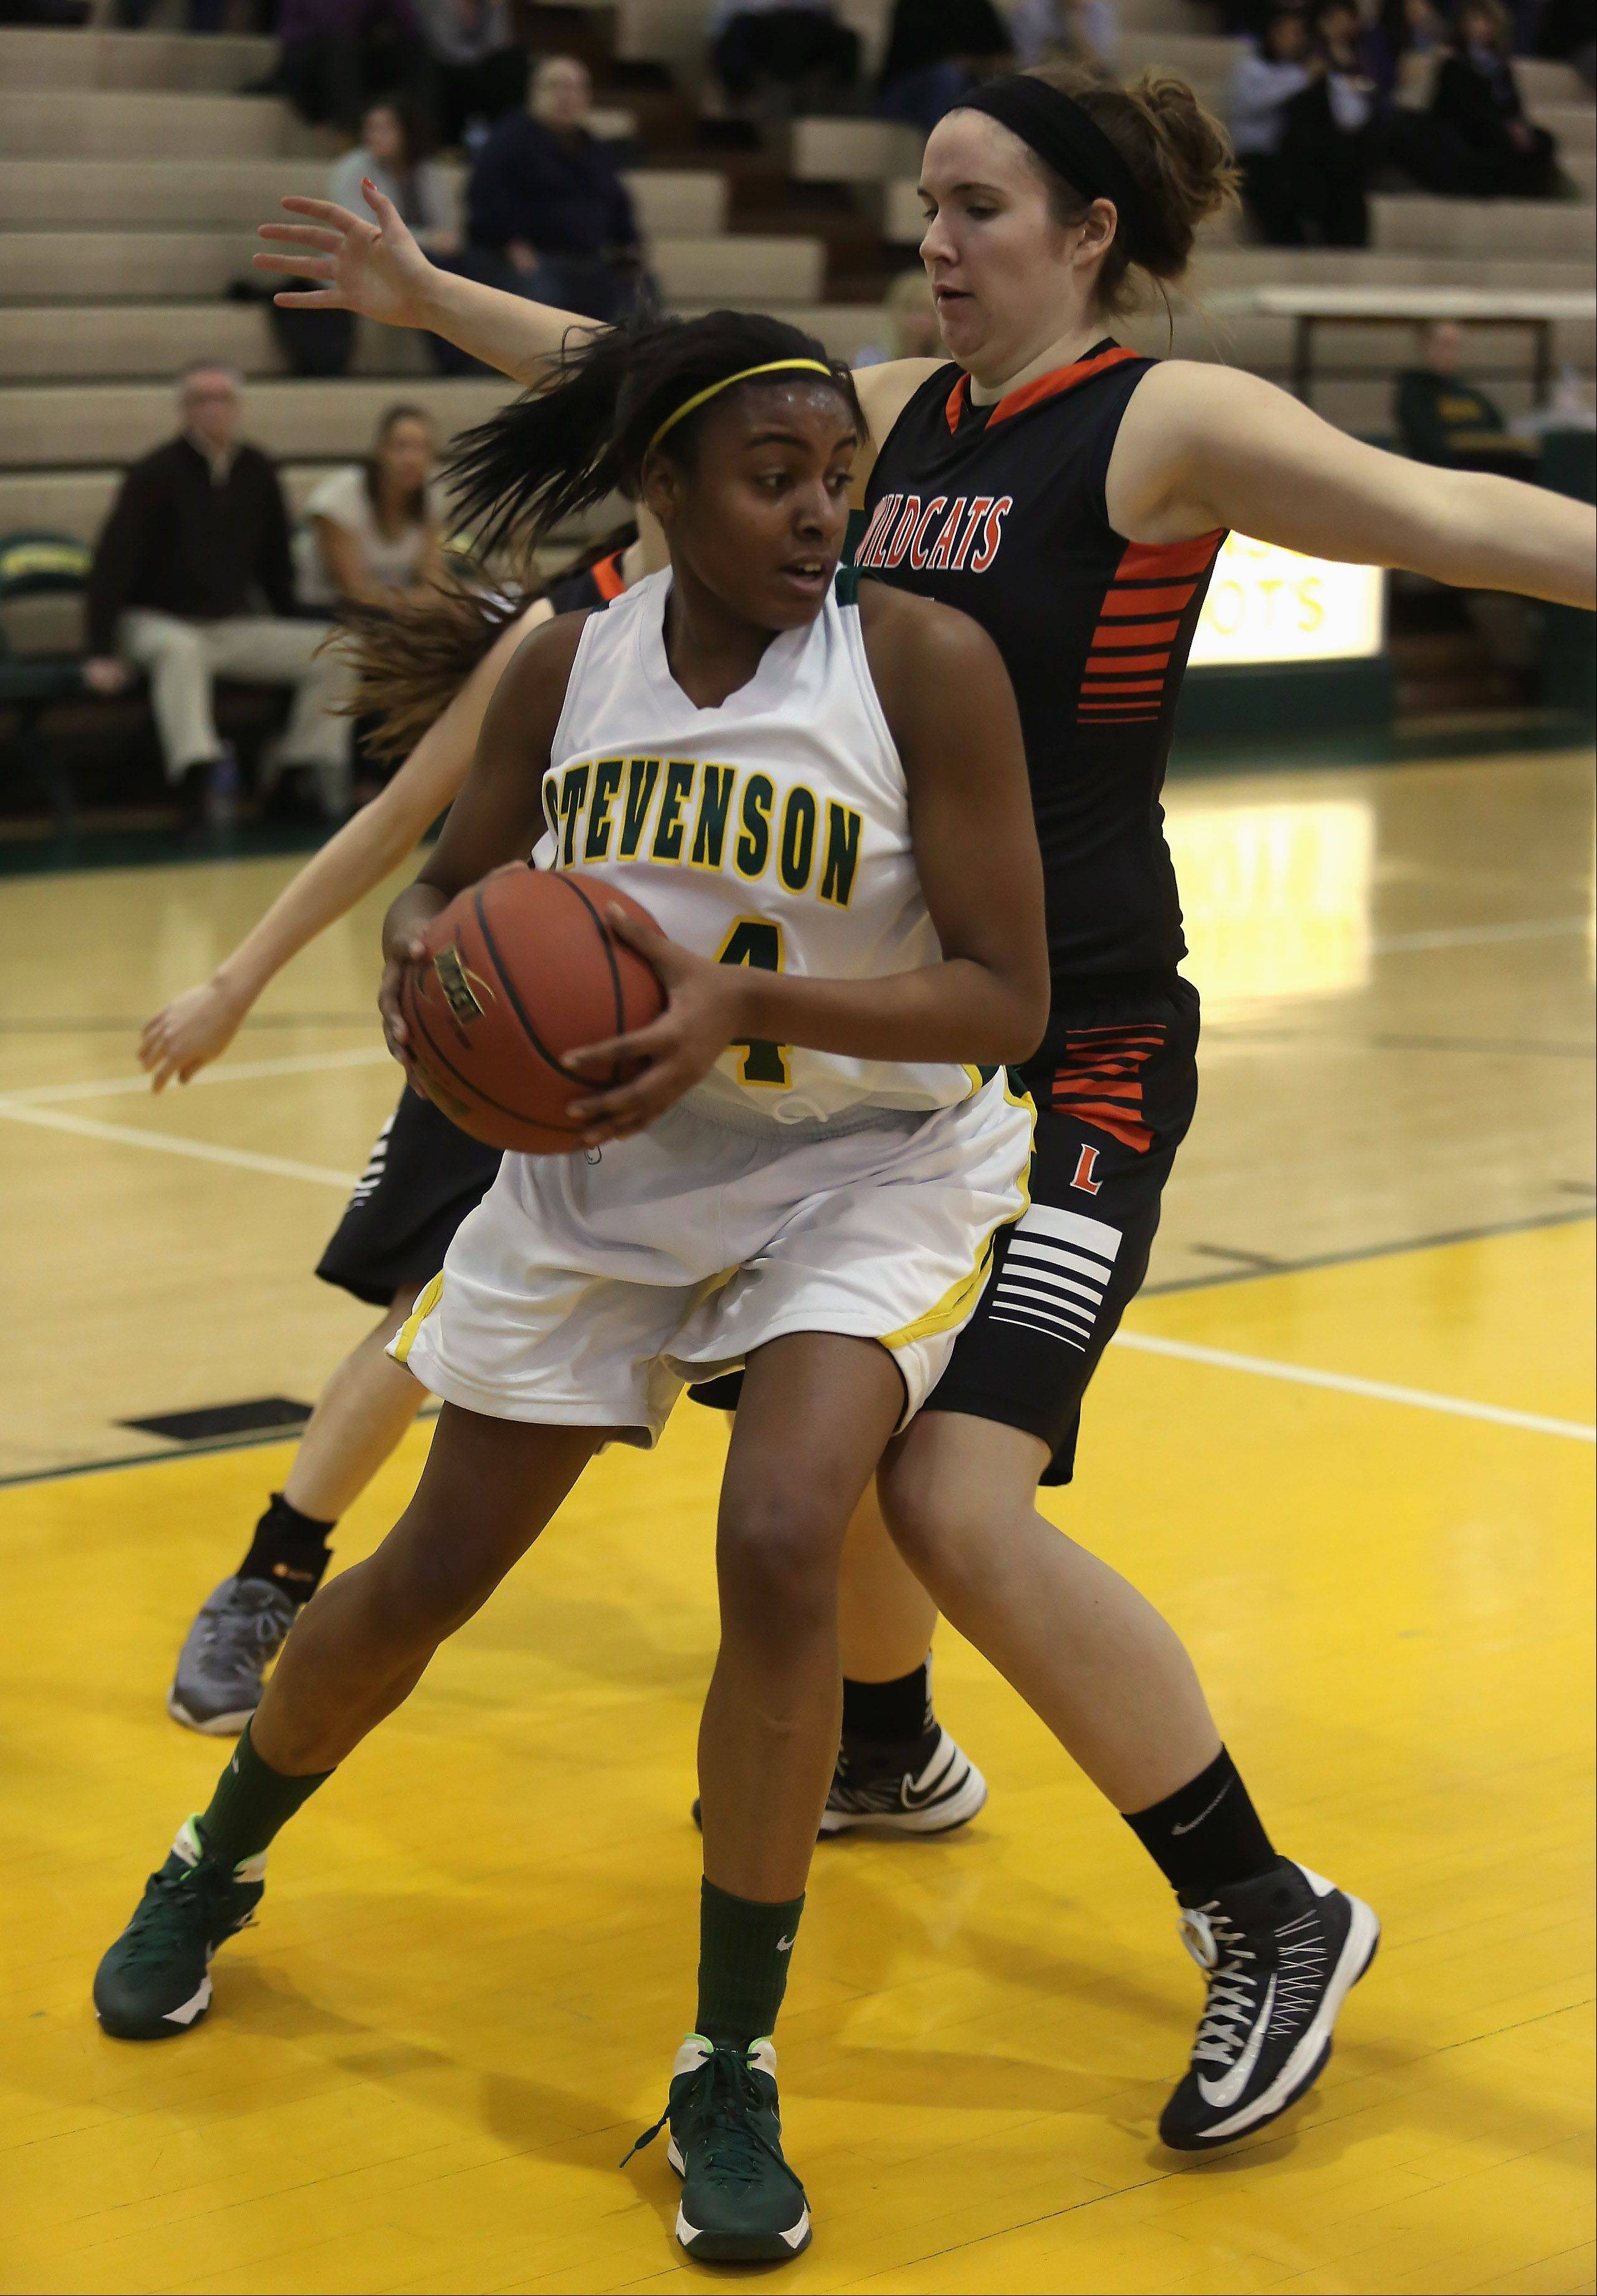 Stevenson forward Taylor Buford heads downcourt after taking a rebound away from Libertyville center Becky Deichl.